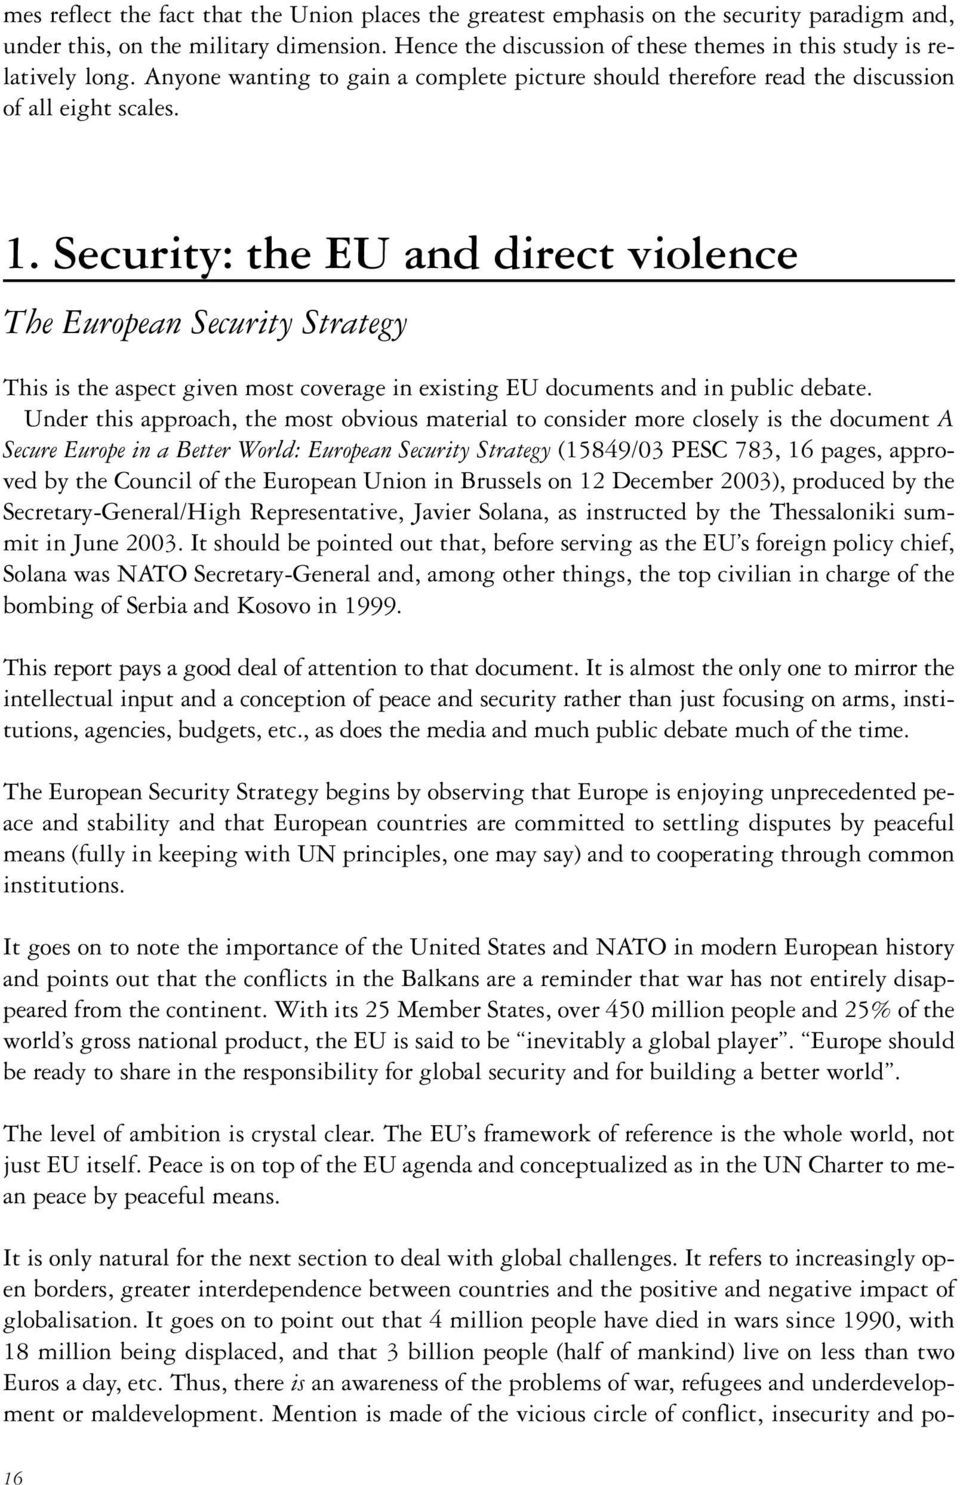 Security: the EU and direct violence The European Security Strategy This is the aspect given most coverage in existing EU documents and in public debate.